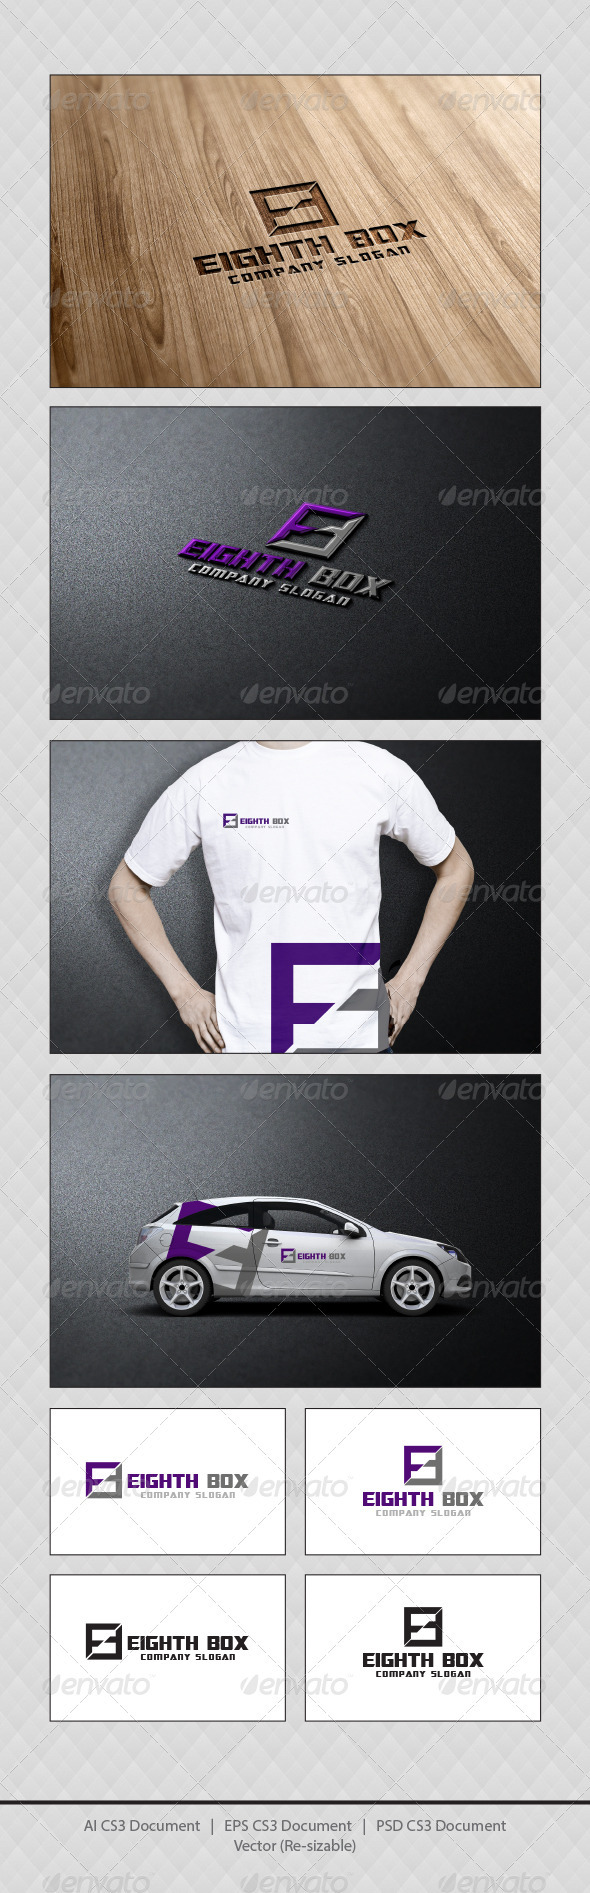 GraphicRiver Eighth Box Logo Template 3844031